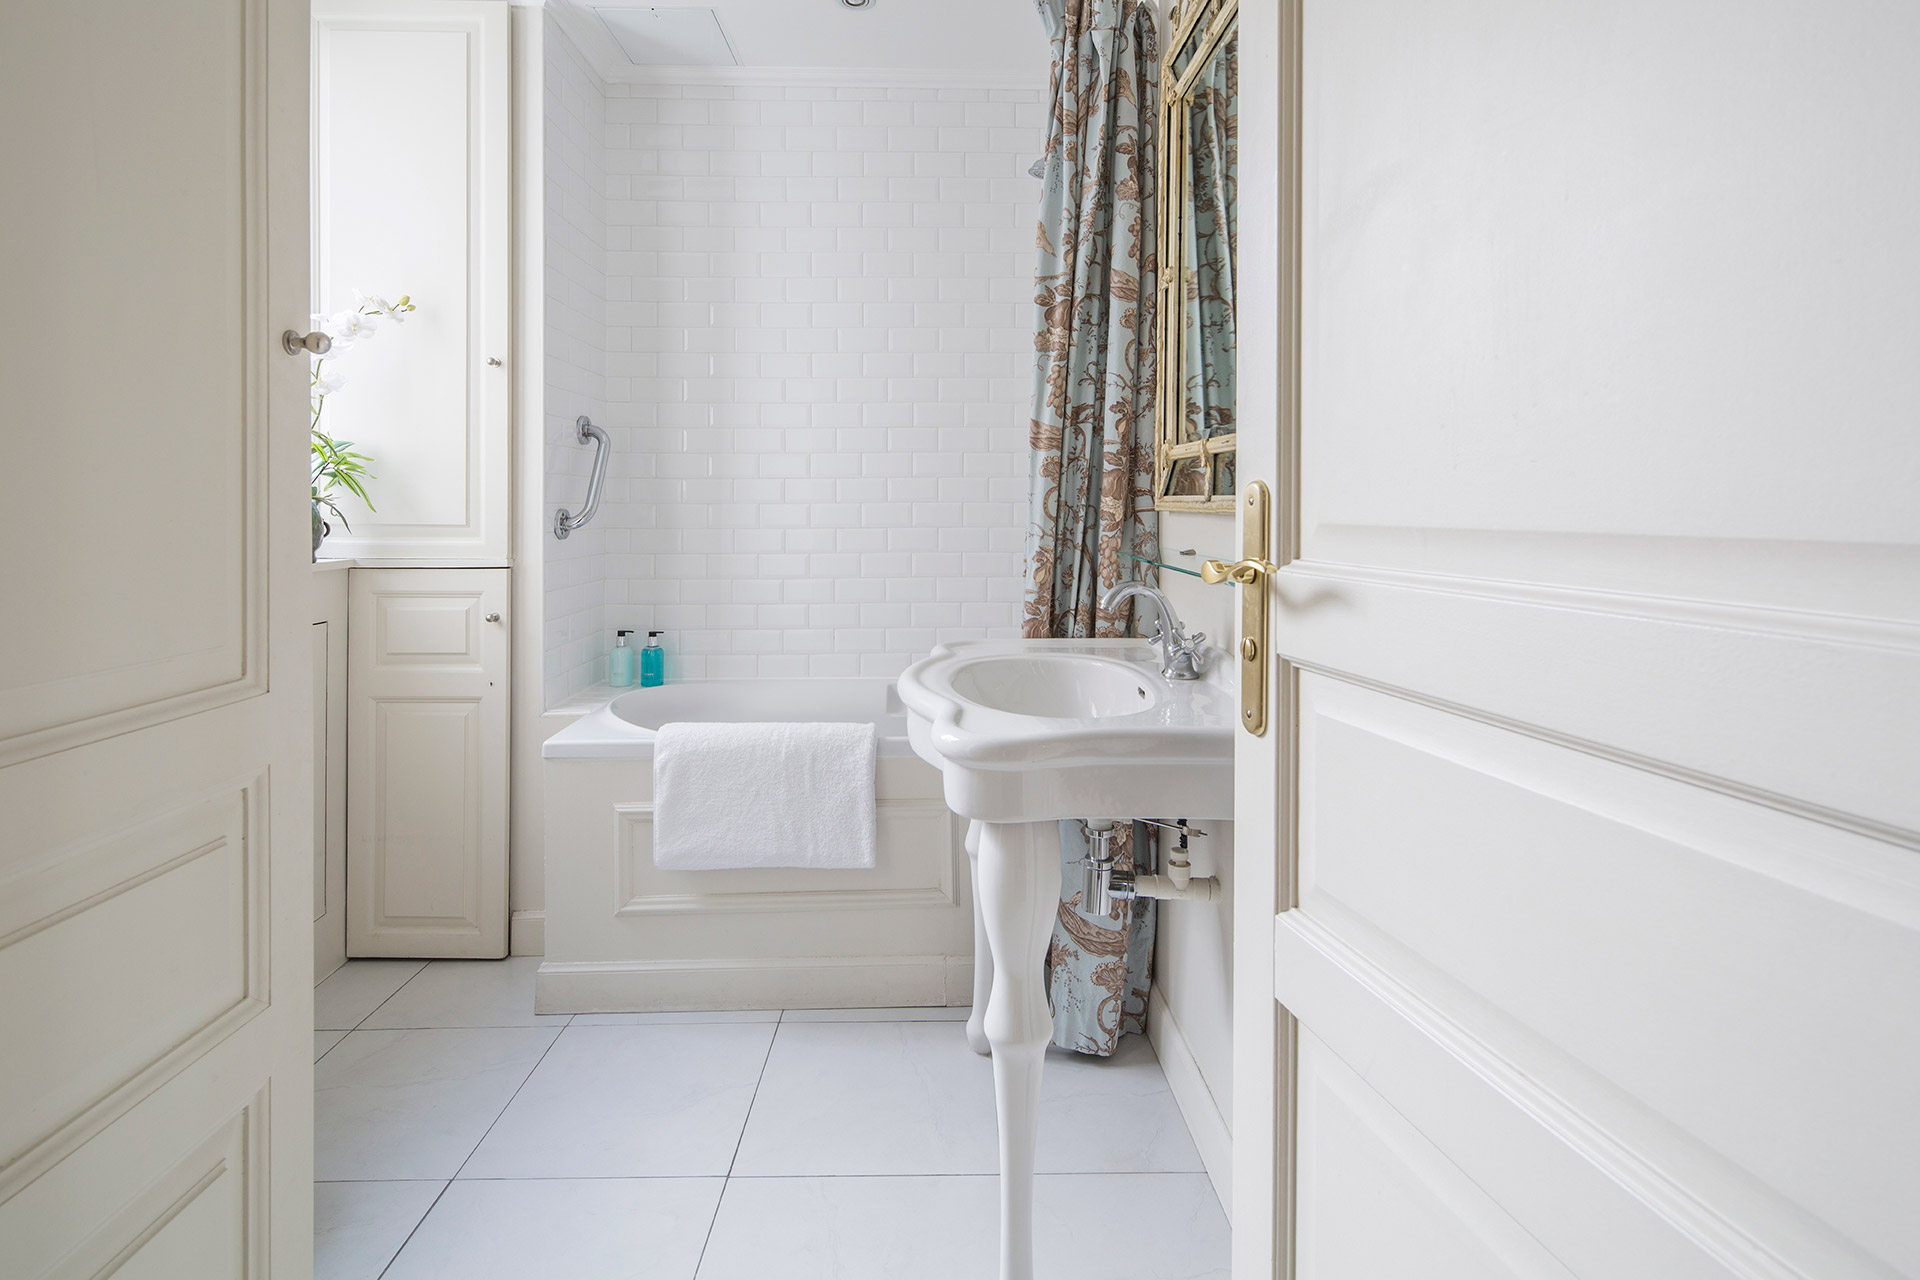 Clean and modern bathrooms in the Beaune Paris apartment